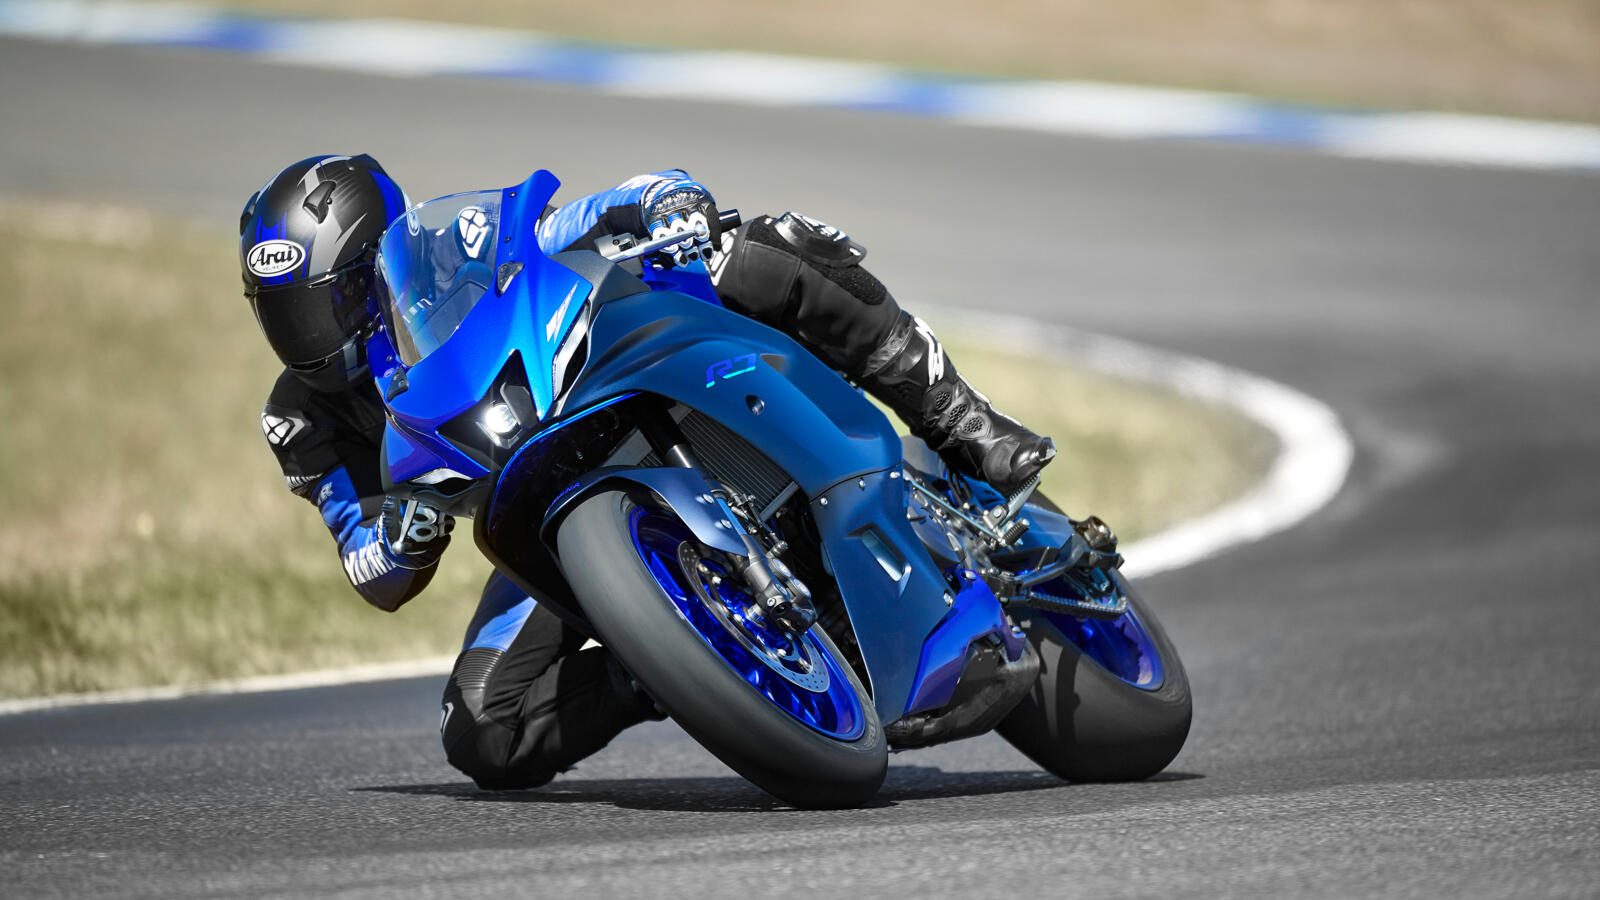 Yamaha's brand new, street-friendly 2022 R7 is a far cry from the original laser-focused race homologation bike that first wore the R7 nameplate in 1999 – but this looks like a brilliant sporty option for new riders